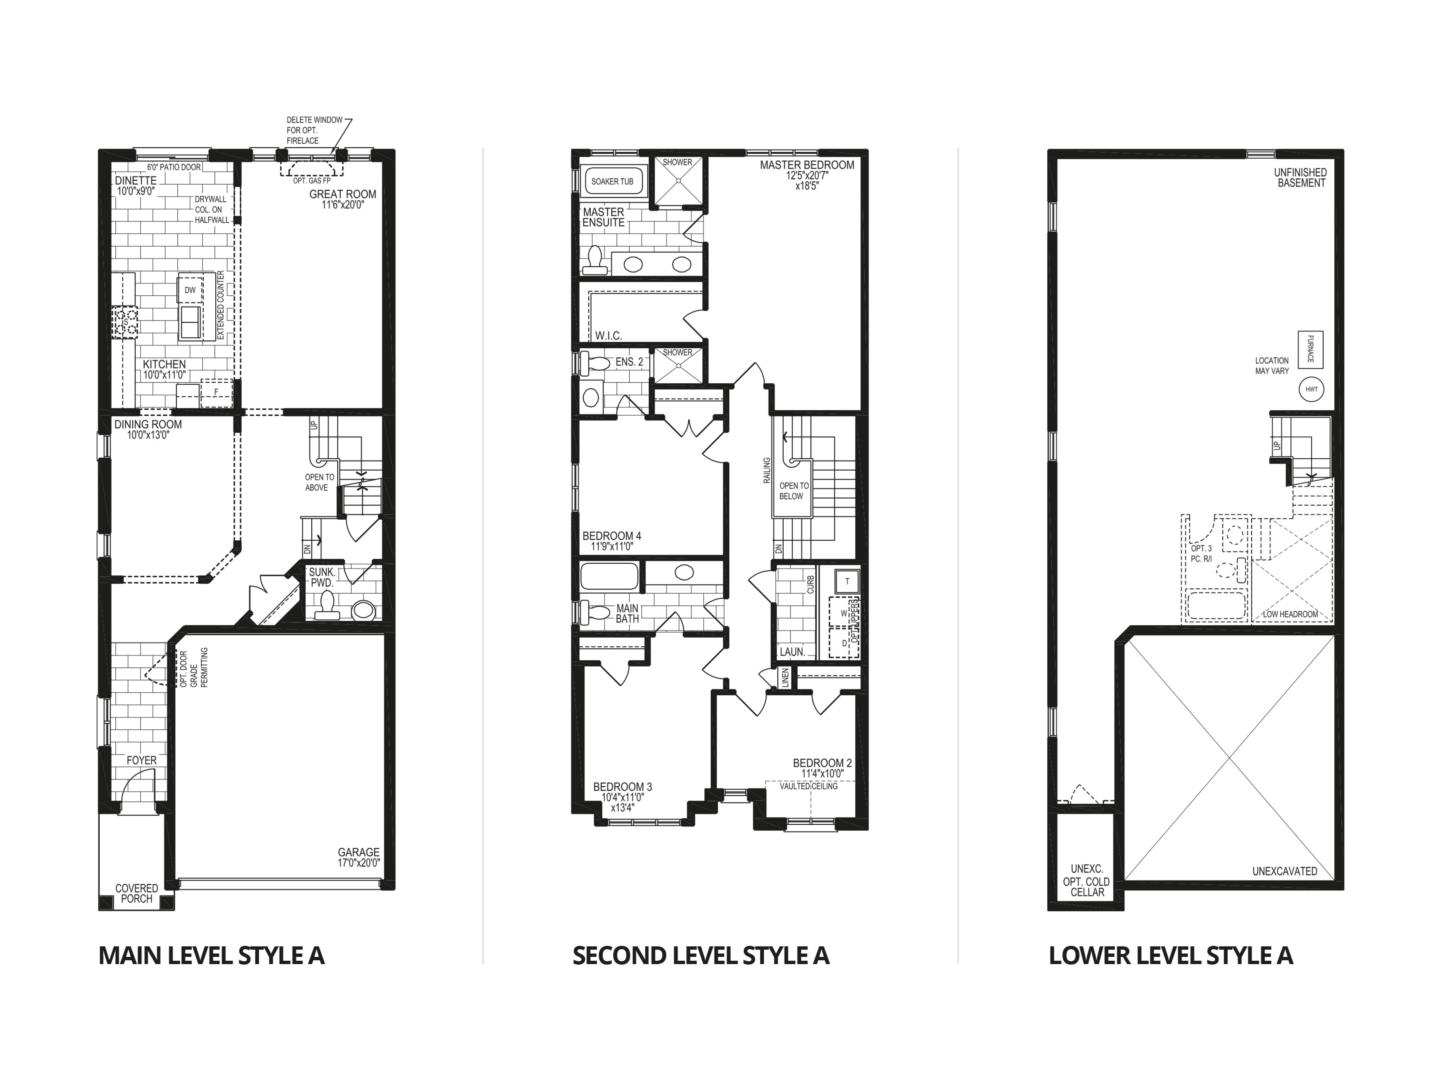 The Mahogany Style A At Pine River In Niagara Falls With Detached 0 60 Counter Circuit Diagram Floorplan For Model